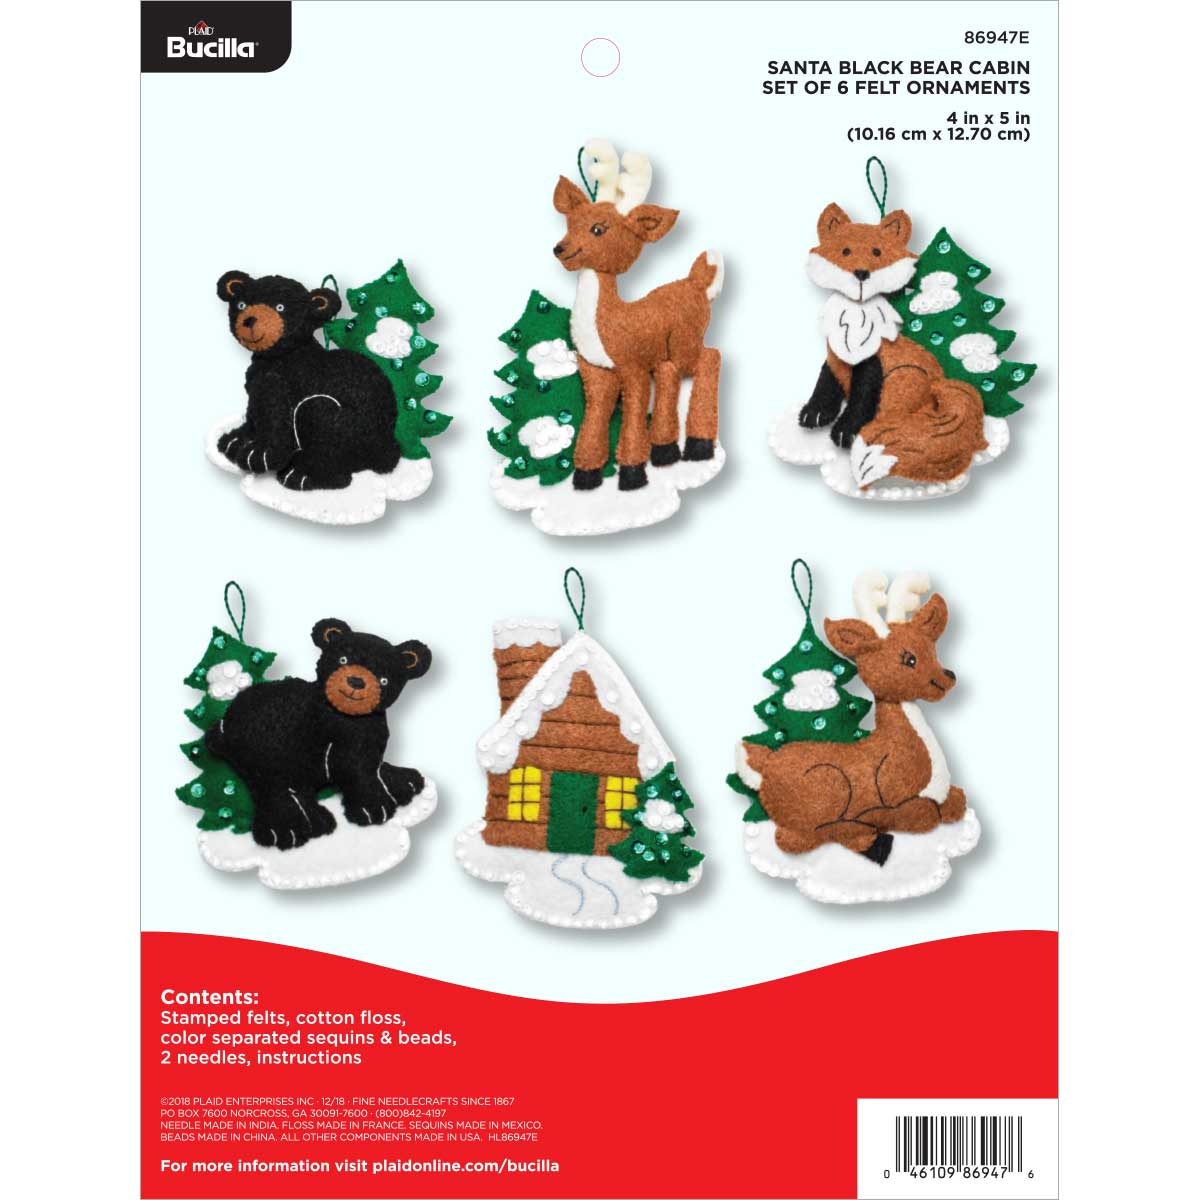 Bucilla ® Seasonal - Felt - Ornament Kits - Santa's Black Bear Cabin - 86947E